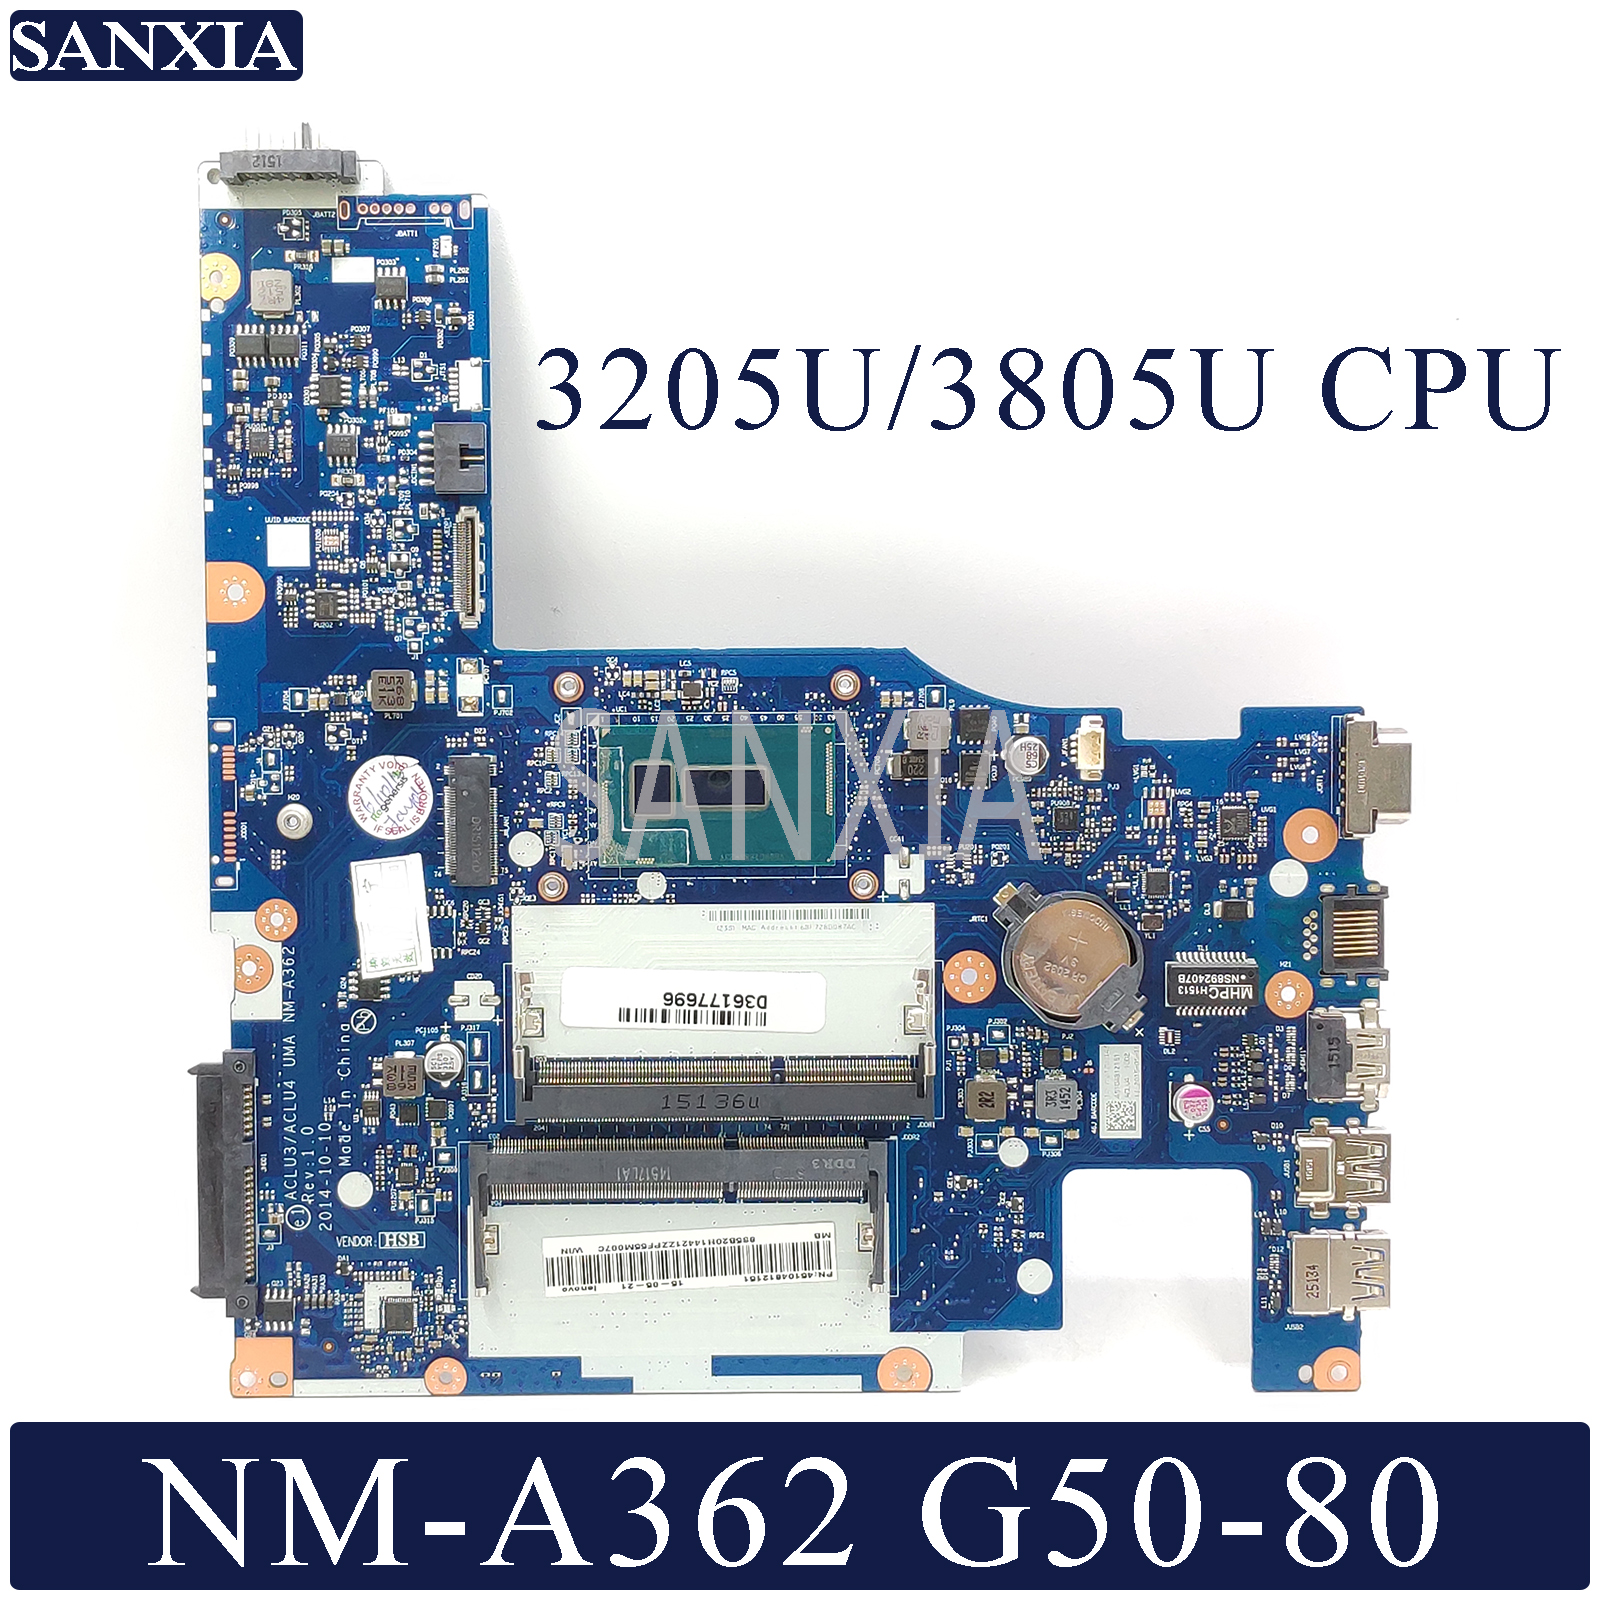 KEFU NM-A362 Laptop Motherboard For Lenovo G50-80 Original Mainboard 3205U/3805U